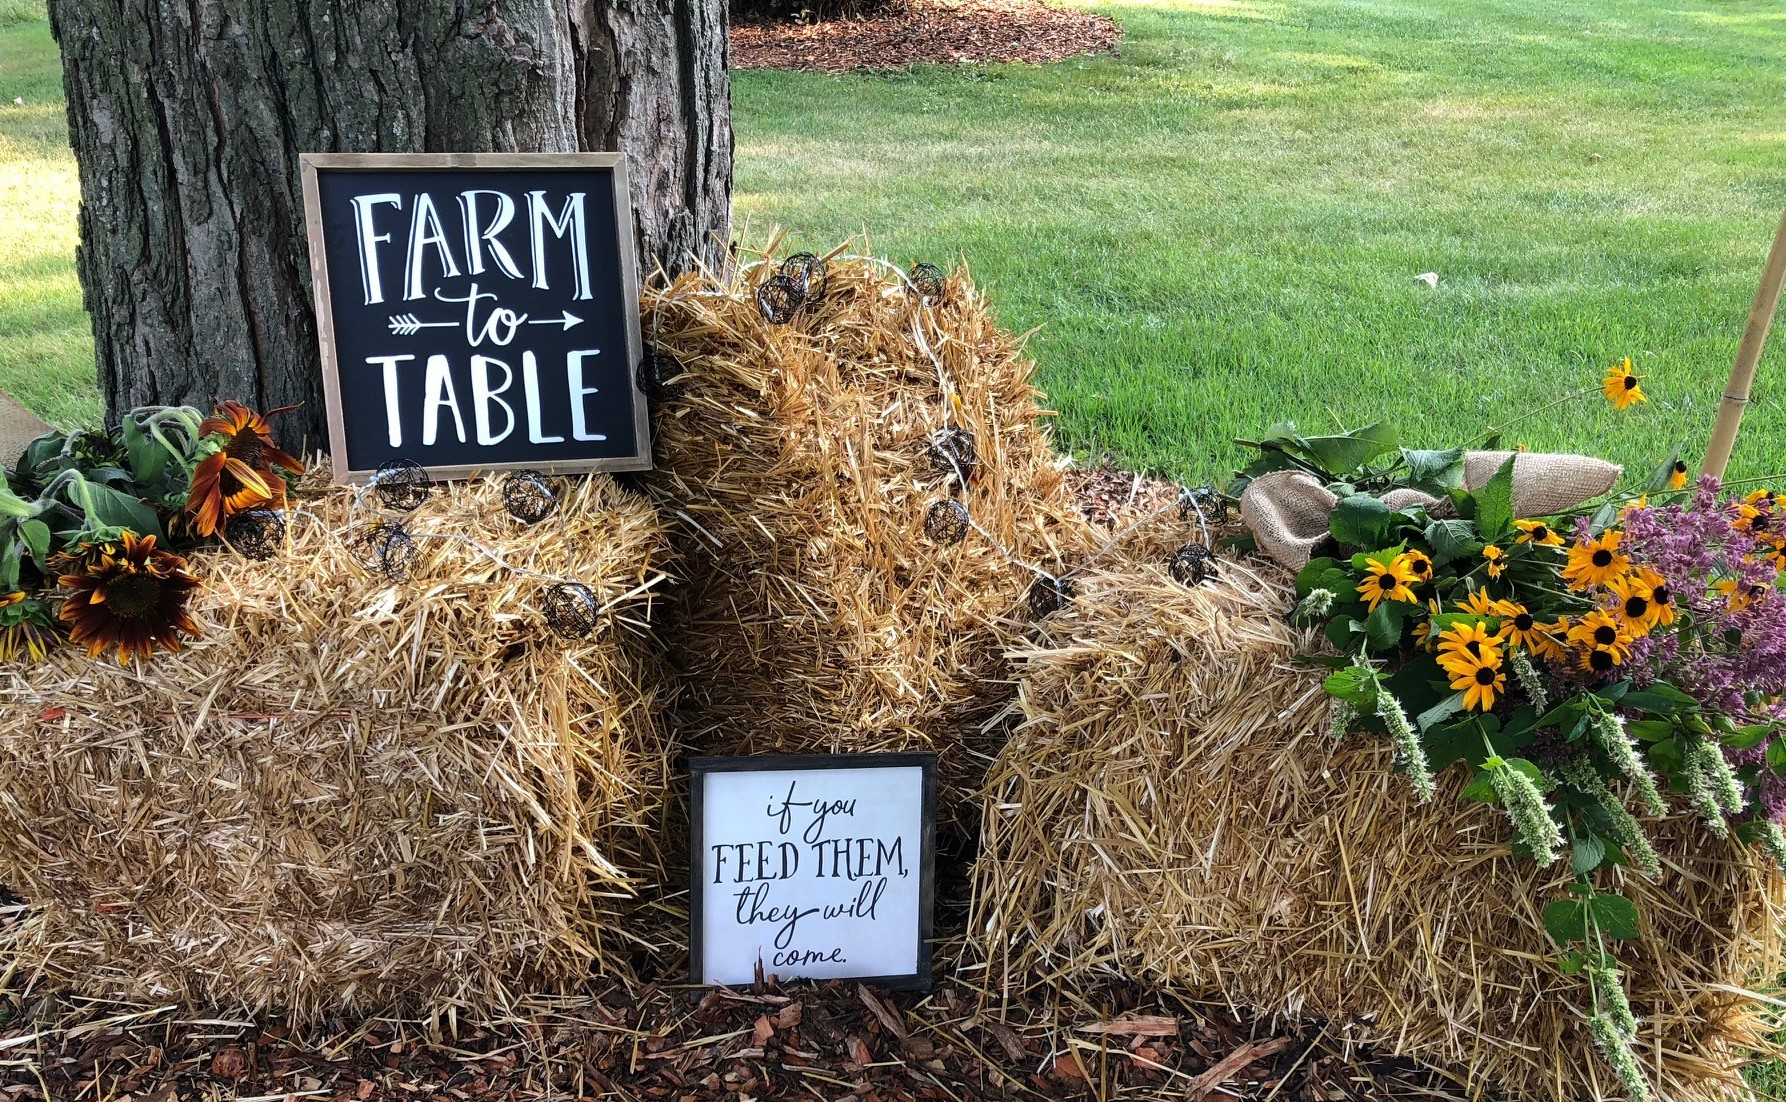 August 10th: Farm to Fork